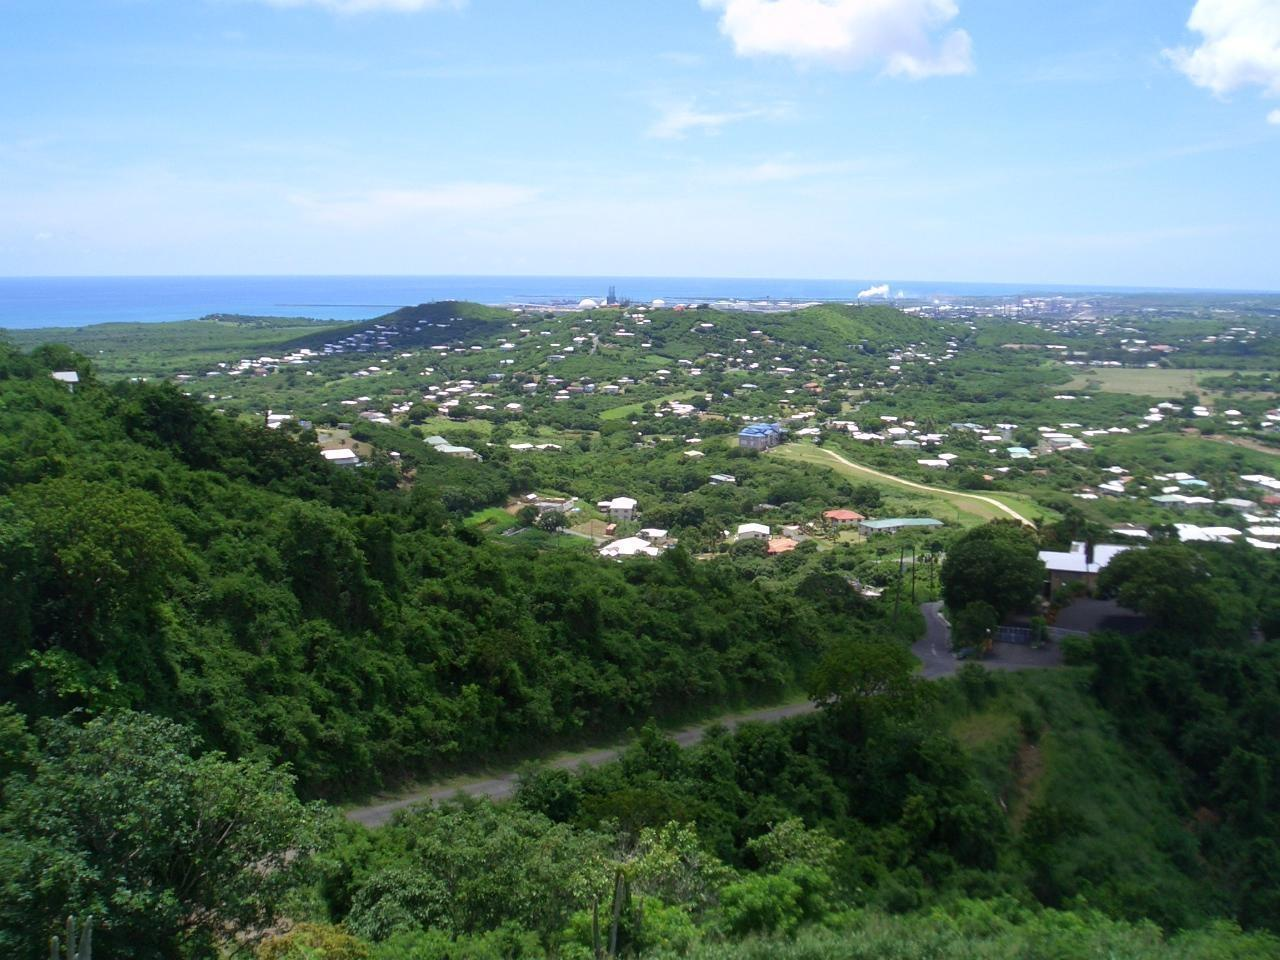 Land for Sale at 92 Hermon Hill CO 92 Hermon Hill CO St Croix, Virgin Islands 00820 United States Virgin Islands